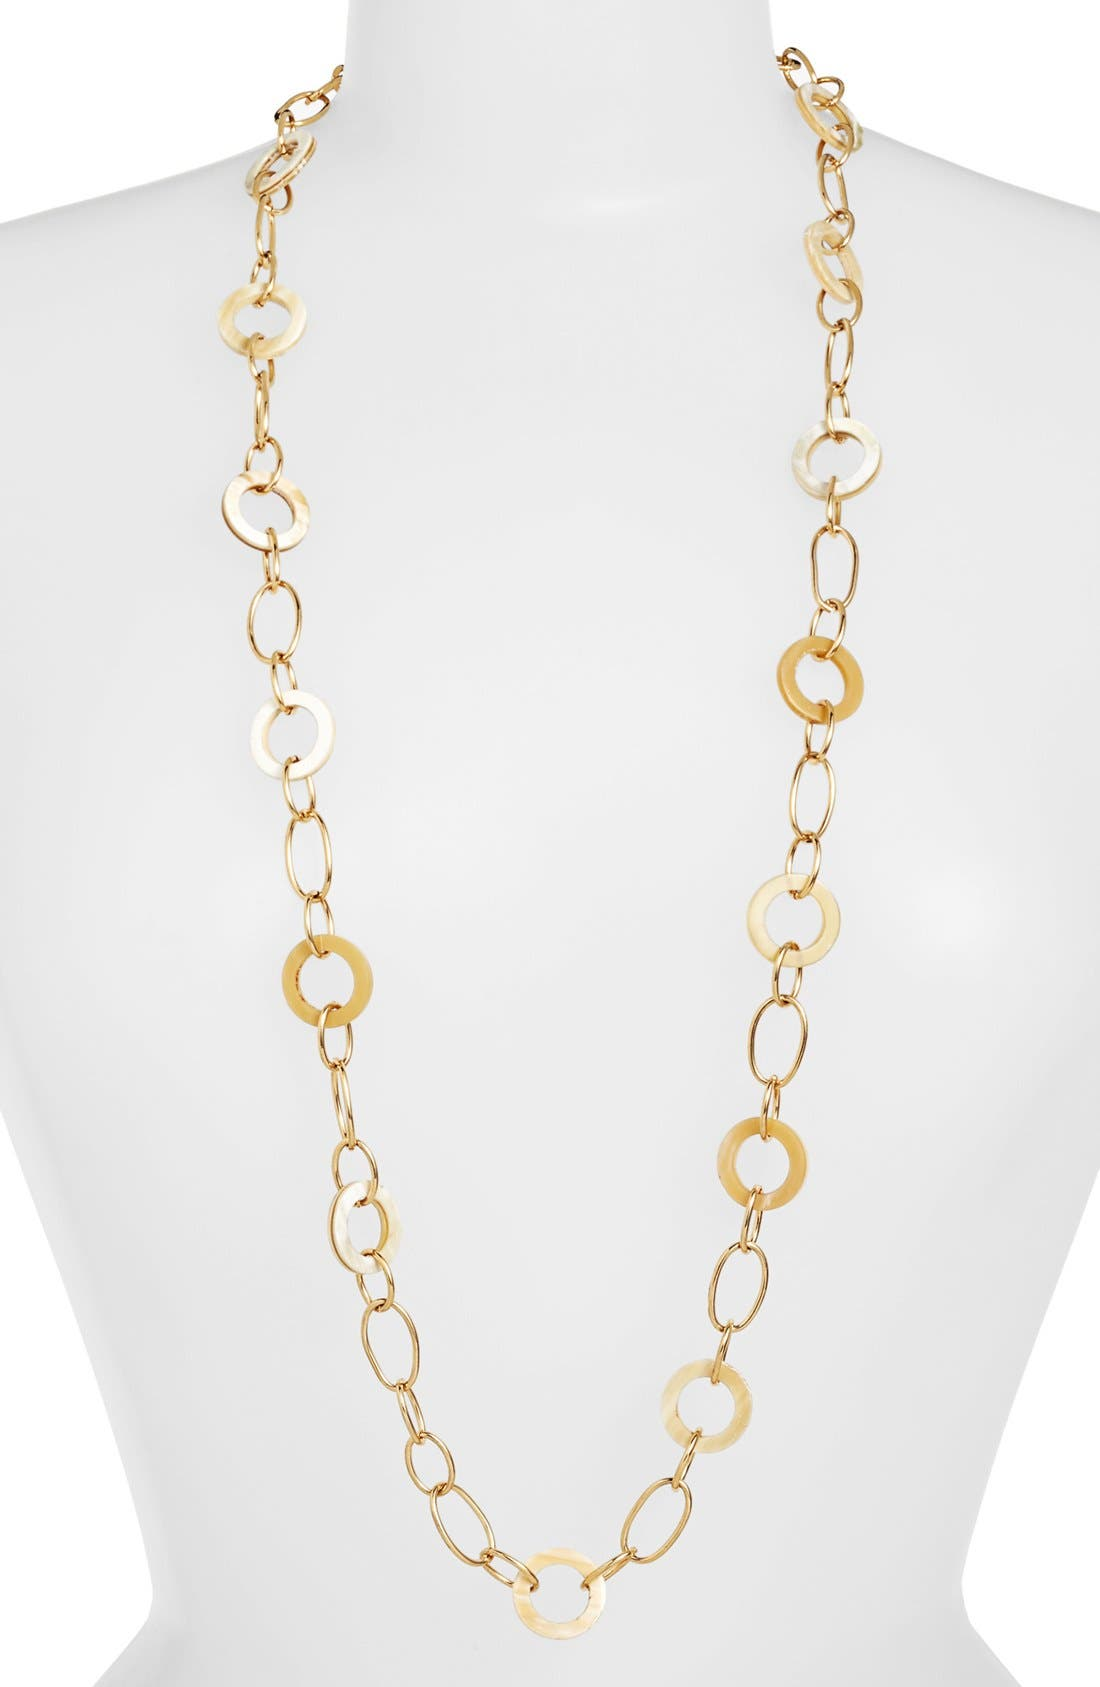 Alternate Image 1 Selected - Lauren Ralph Lauren Horn & Chain Link Necklace